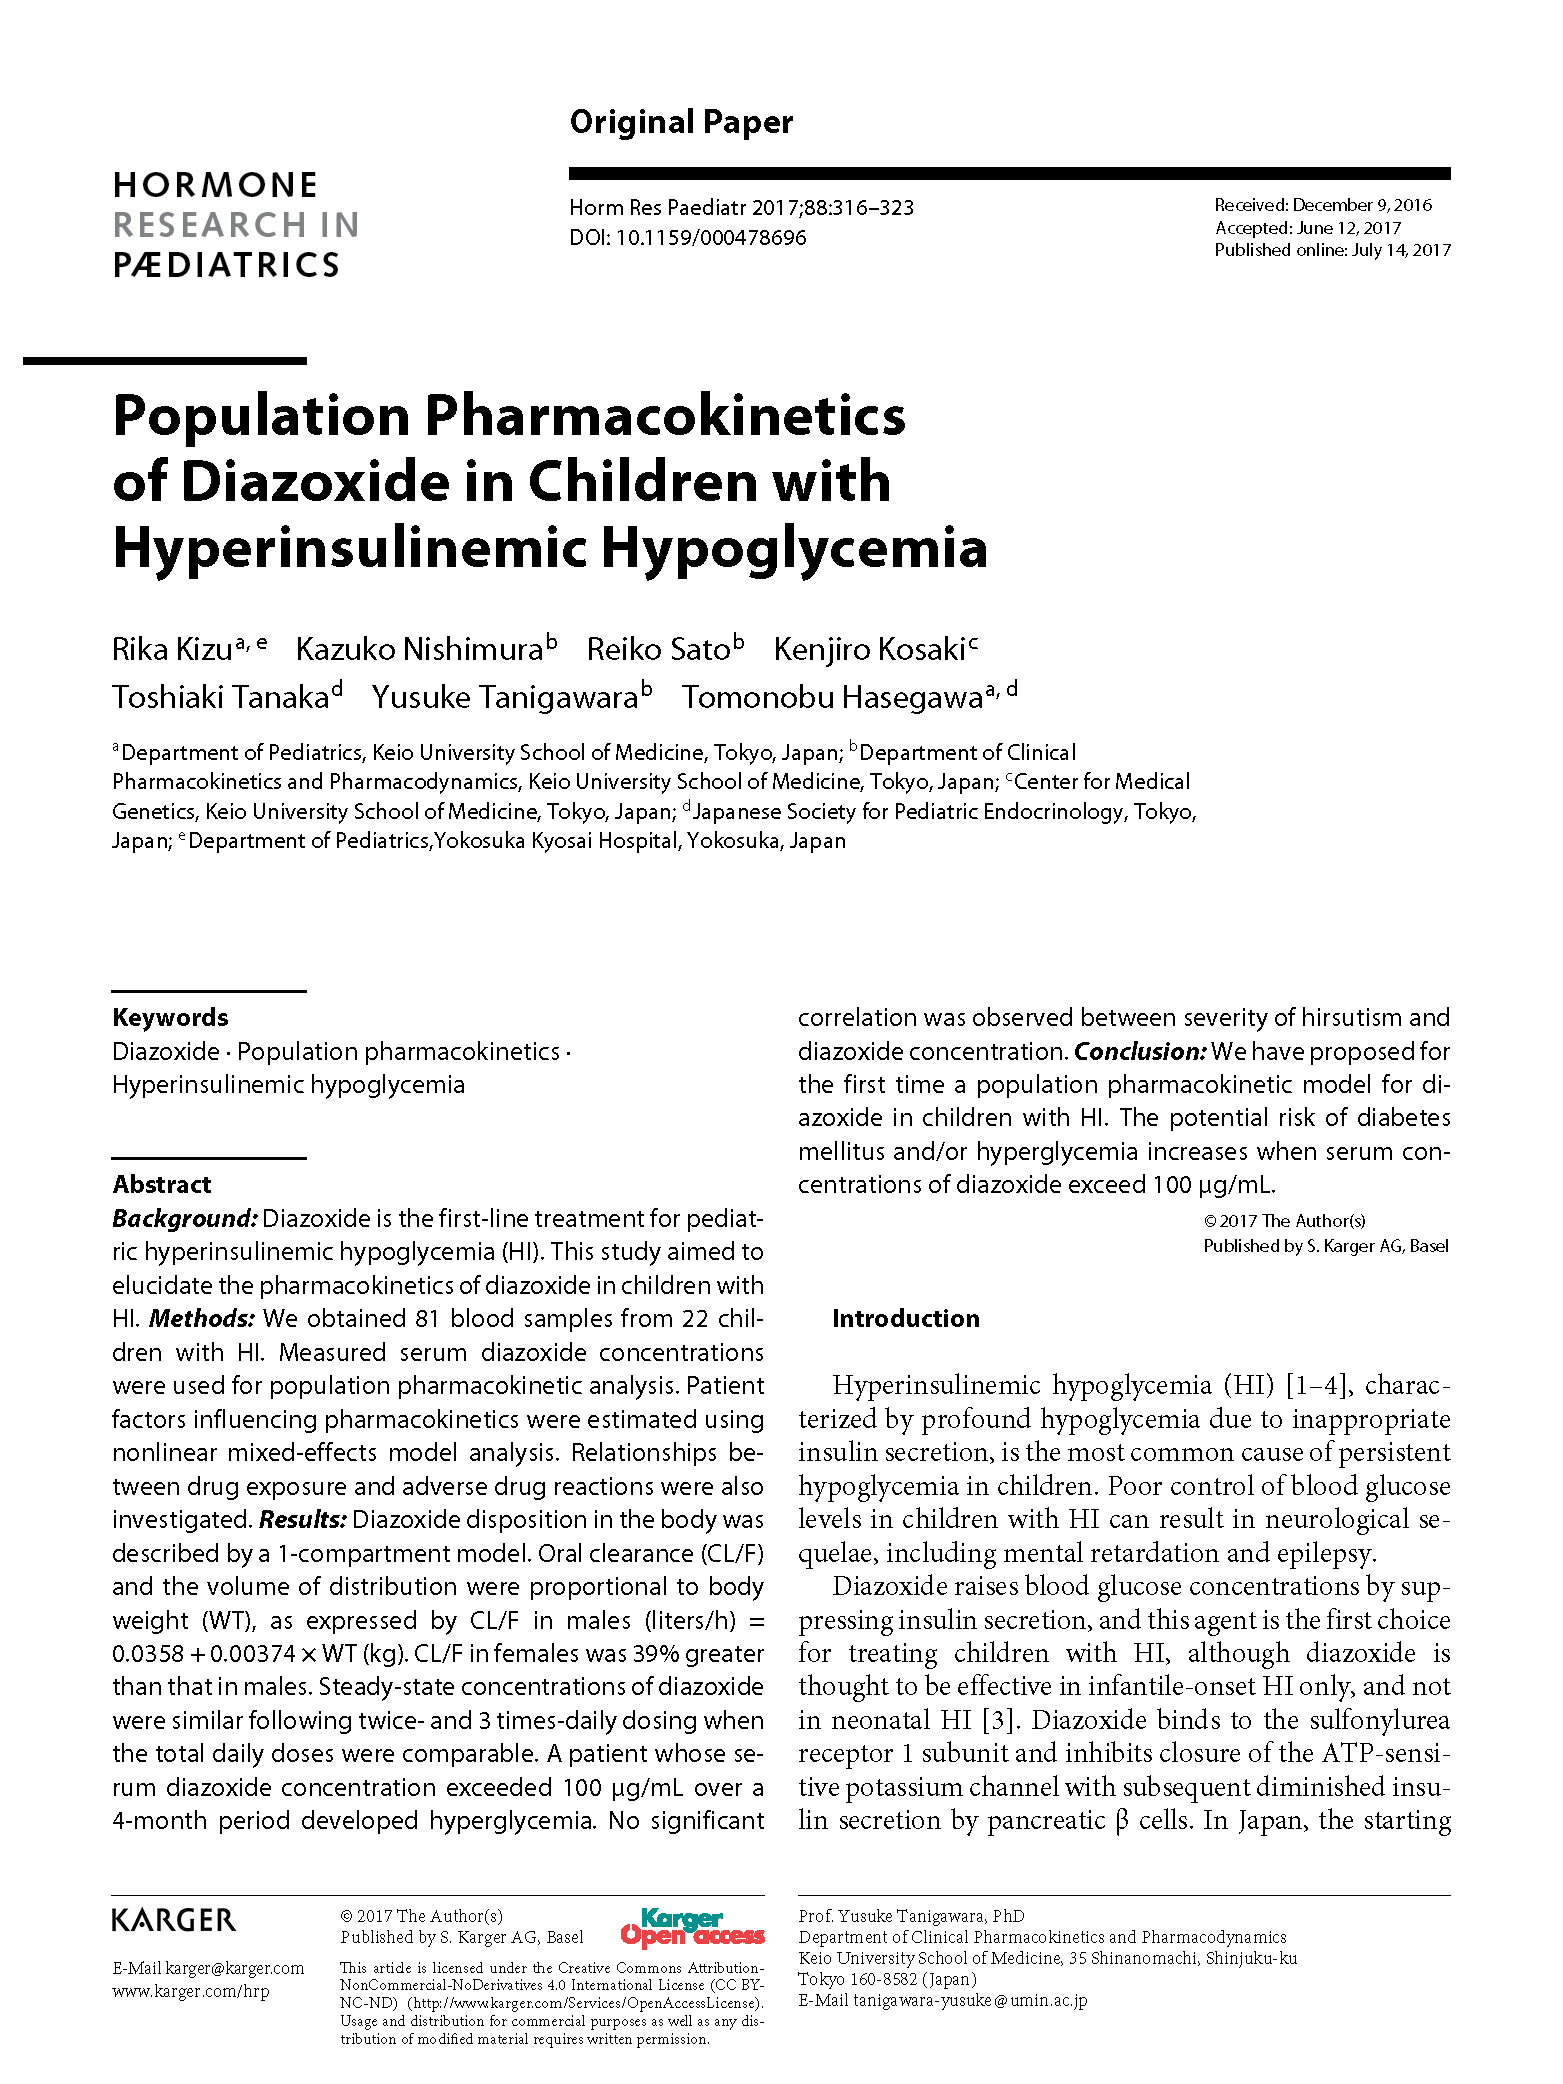 Population Pharmacokinetics of Diazoxide in Children with Hyperinsulinemic Hypoglycemia